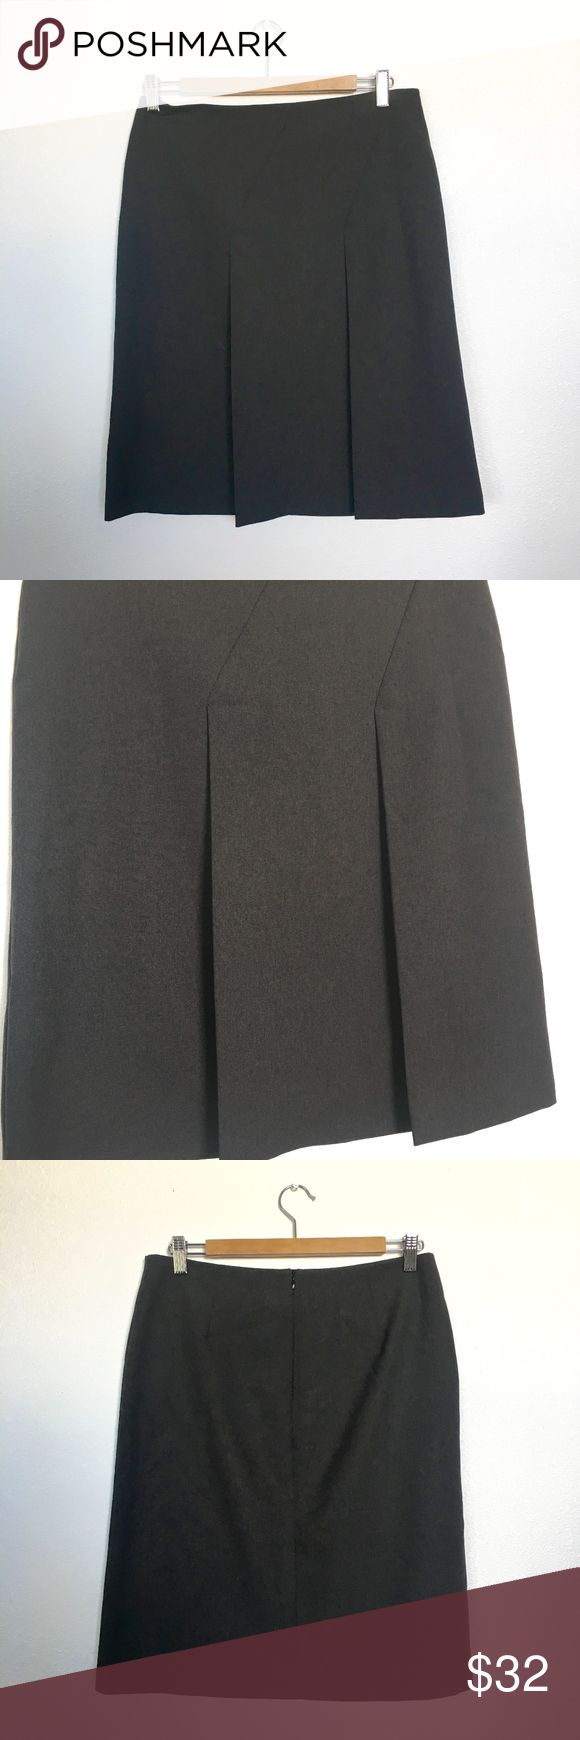 """United Colors of Benetton Short Pleated Skirt Size A classic Italian United Colors of Benetton brown pleated skirt. Super cute with boots or a pair of mary janes. Two large pleats. Above the knee skirt. Back zipper. Excellent condition 9.5/10. No holes, stains, or tears. Please see all photos.   Waist: 16"""" Length: 23"""" Zipper length: 7"""" United Colors Of Benetton Skirts Midi"""